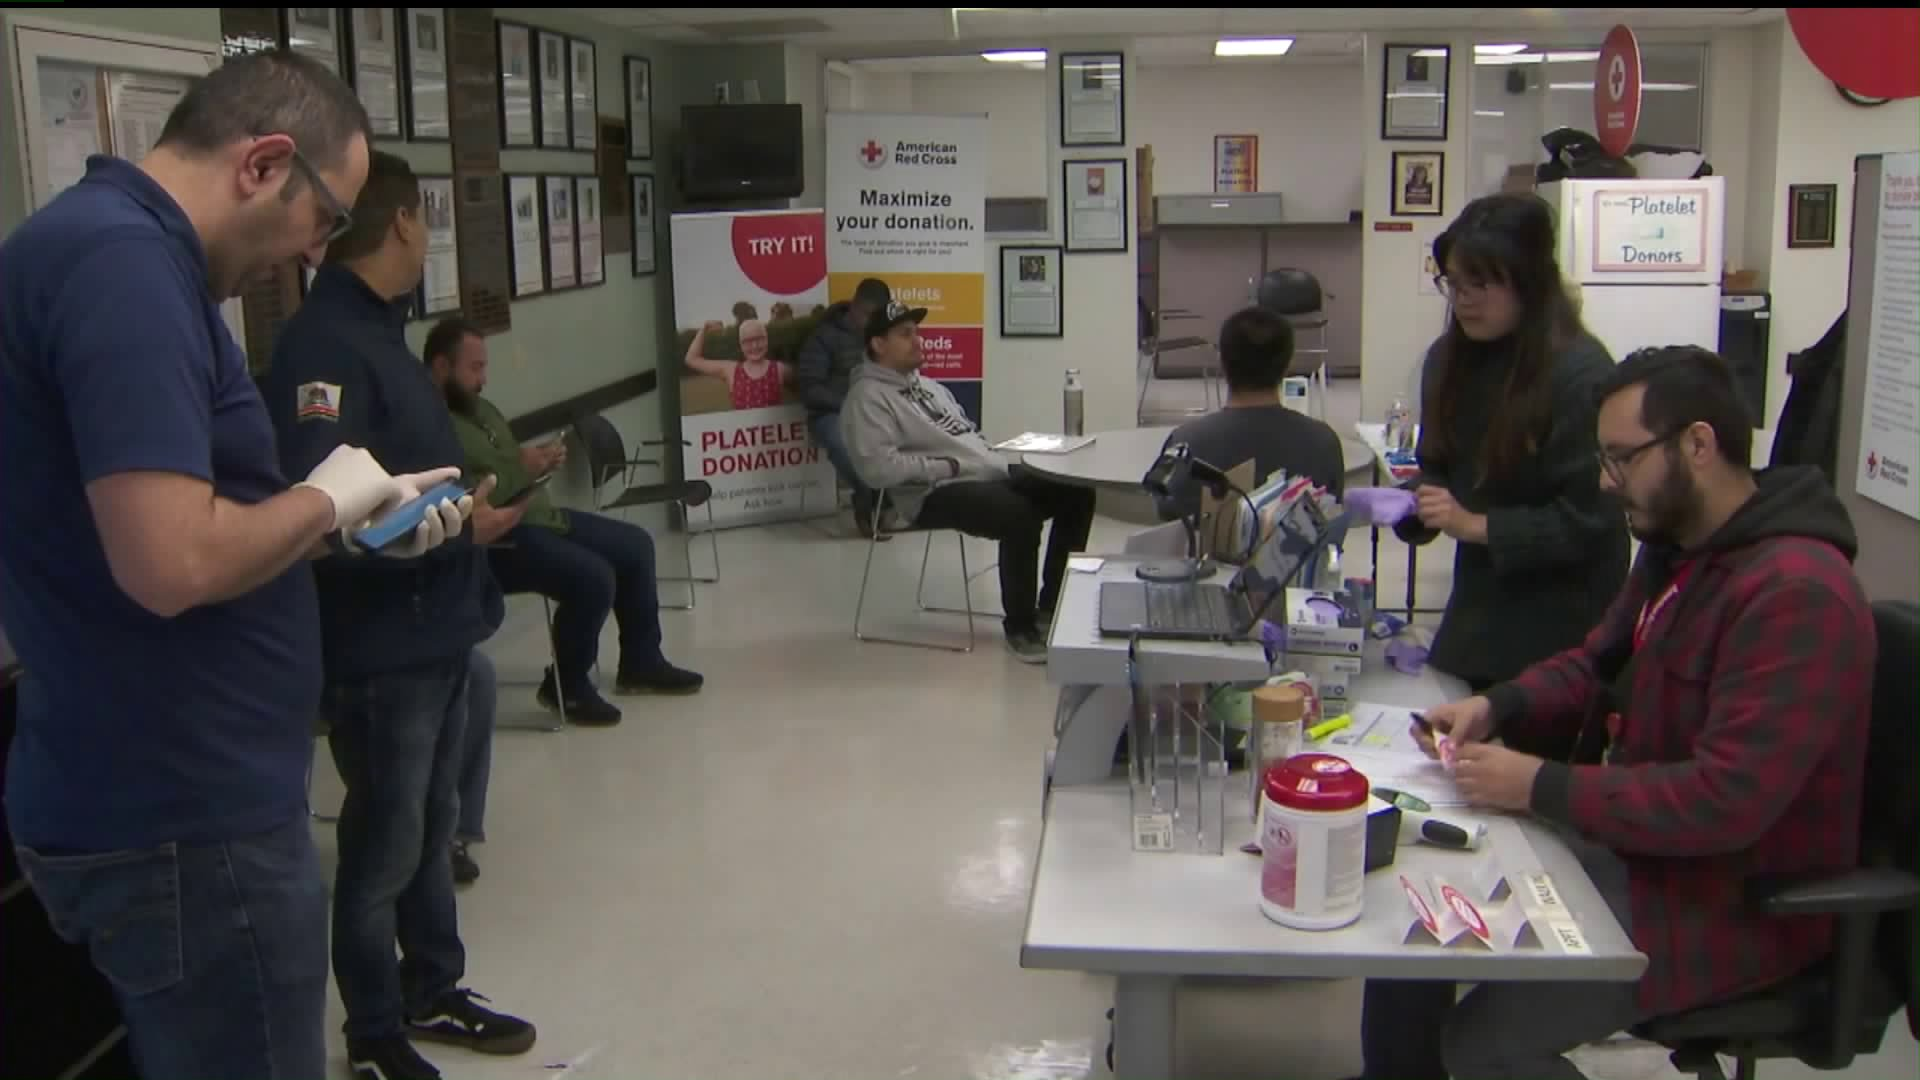 People donate blood at the American Red Cross in Pasadena on March 21, 2020. (Credit: KTLA)